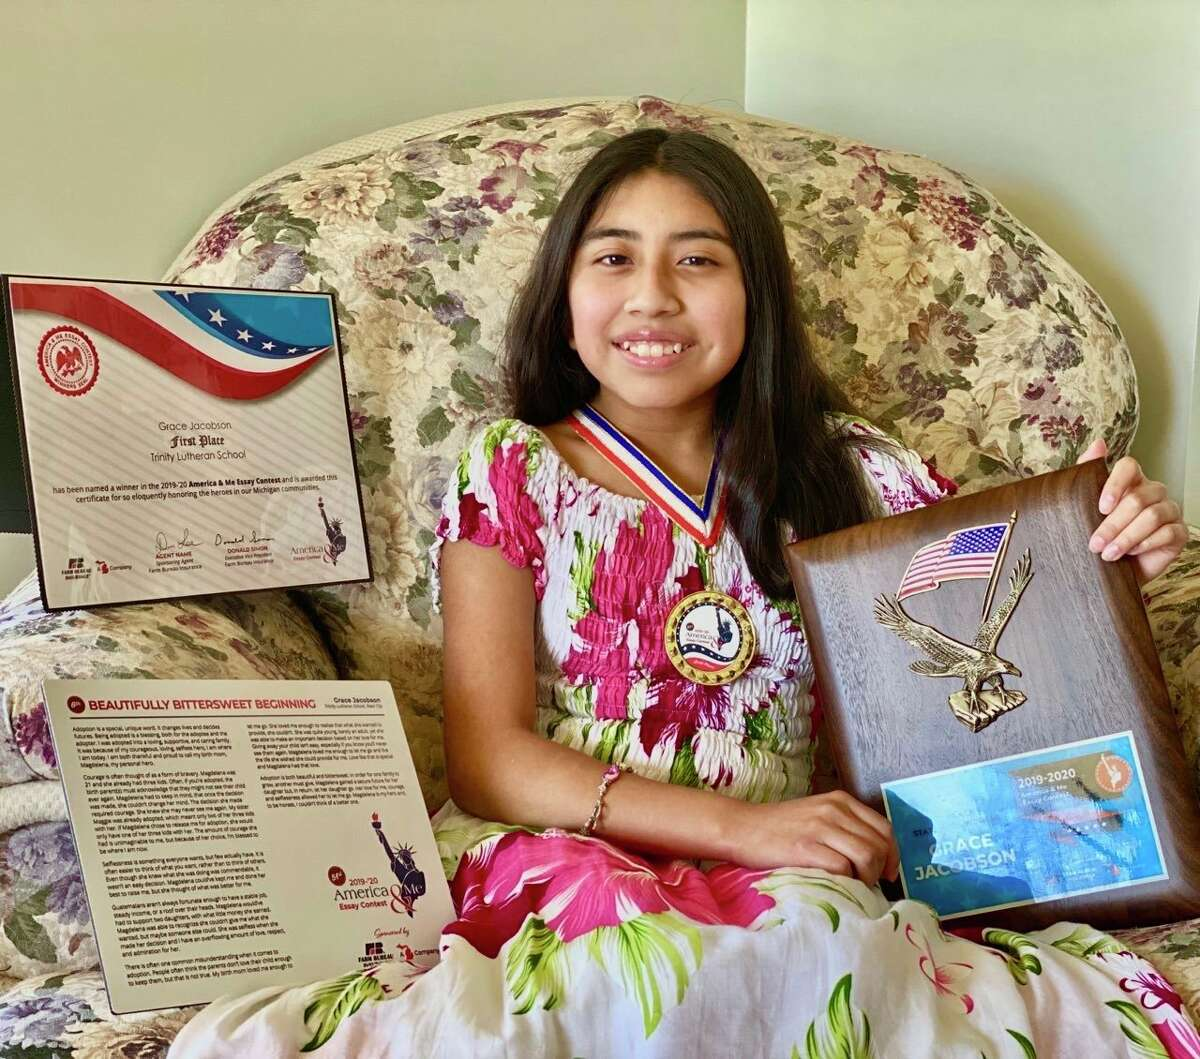 Grace Jacobson, an eighth grader at Trinity Lutheran School, poses with her many awards she earned as a winner of the Farm Bureau Insurance Company America and Me contest. Jacobson placed sixth out of 3,500 entrants from 350 schools.Among herawards was a $1,000 check. (Submitted photo)